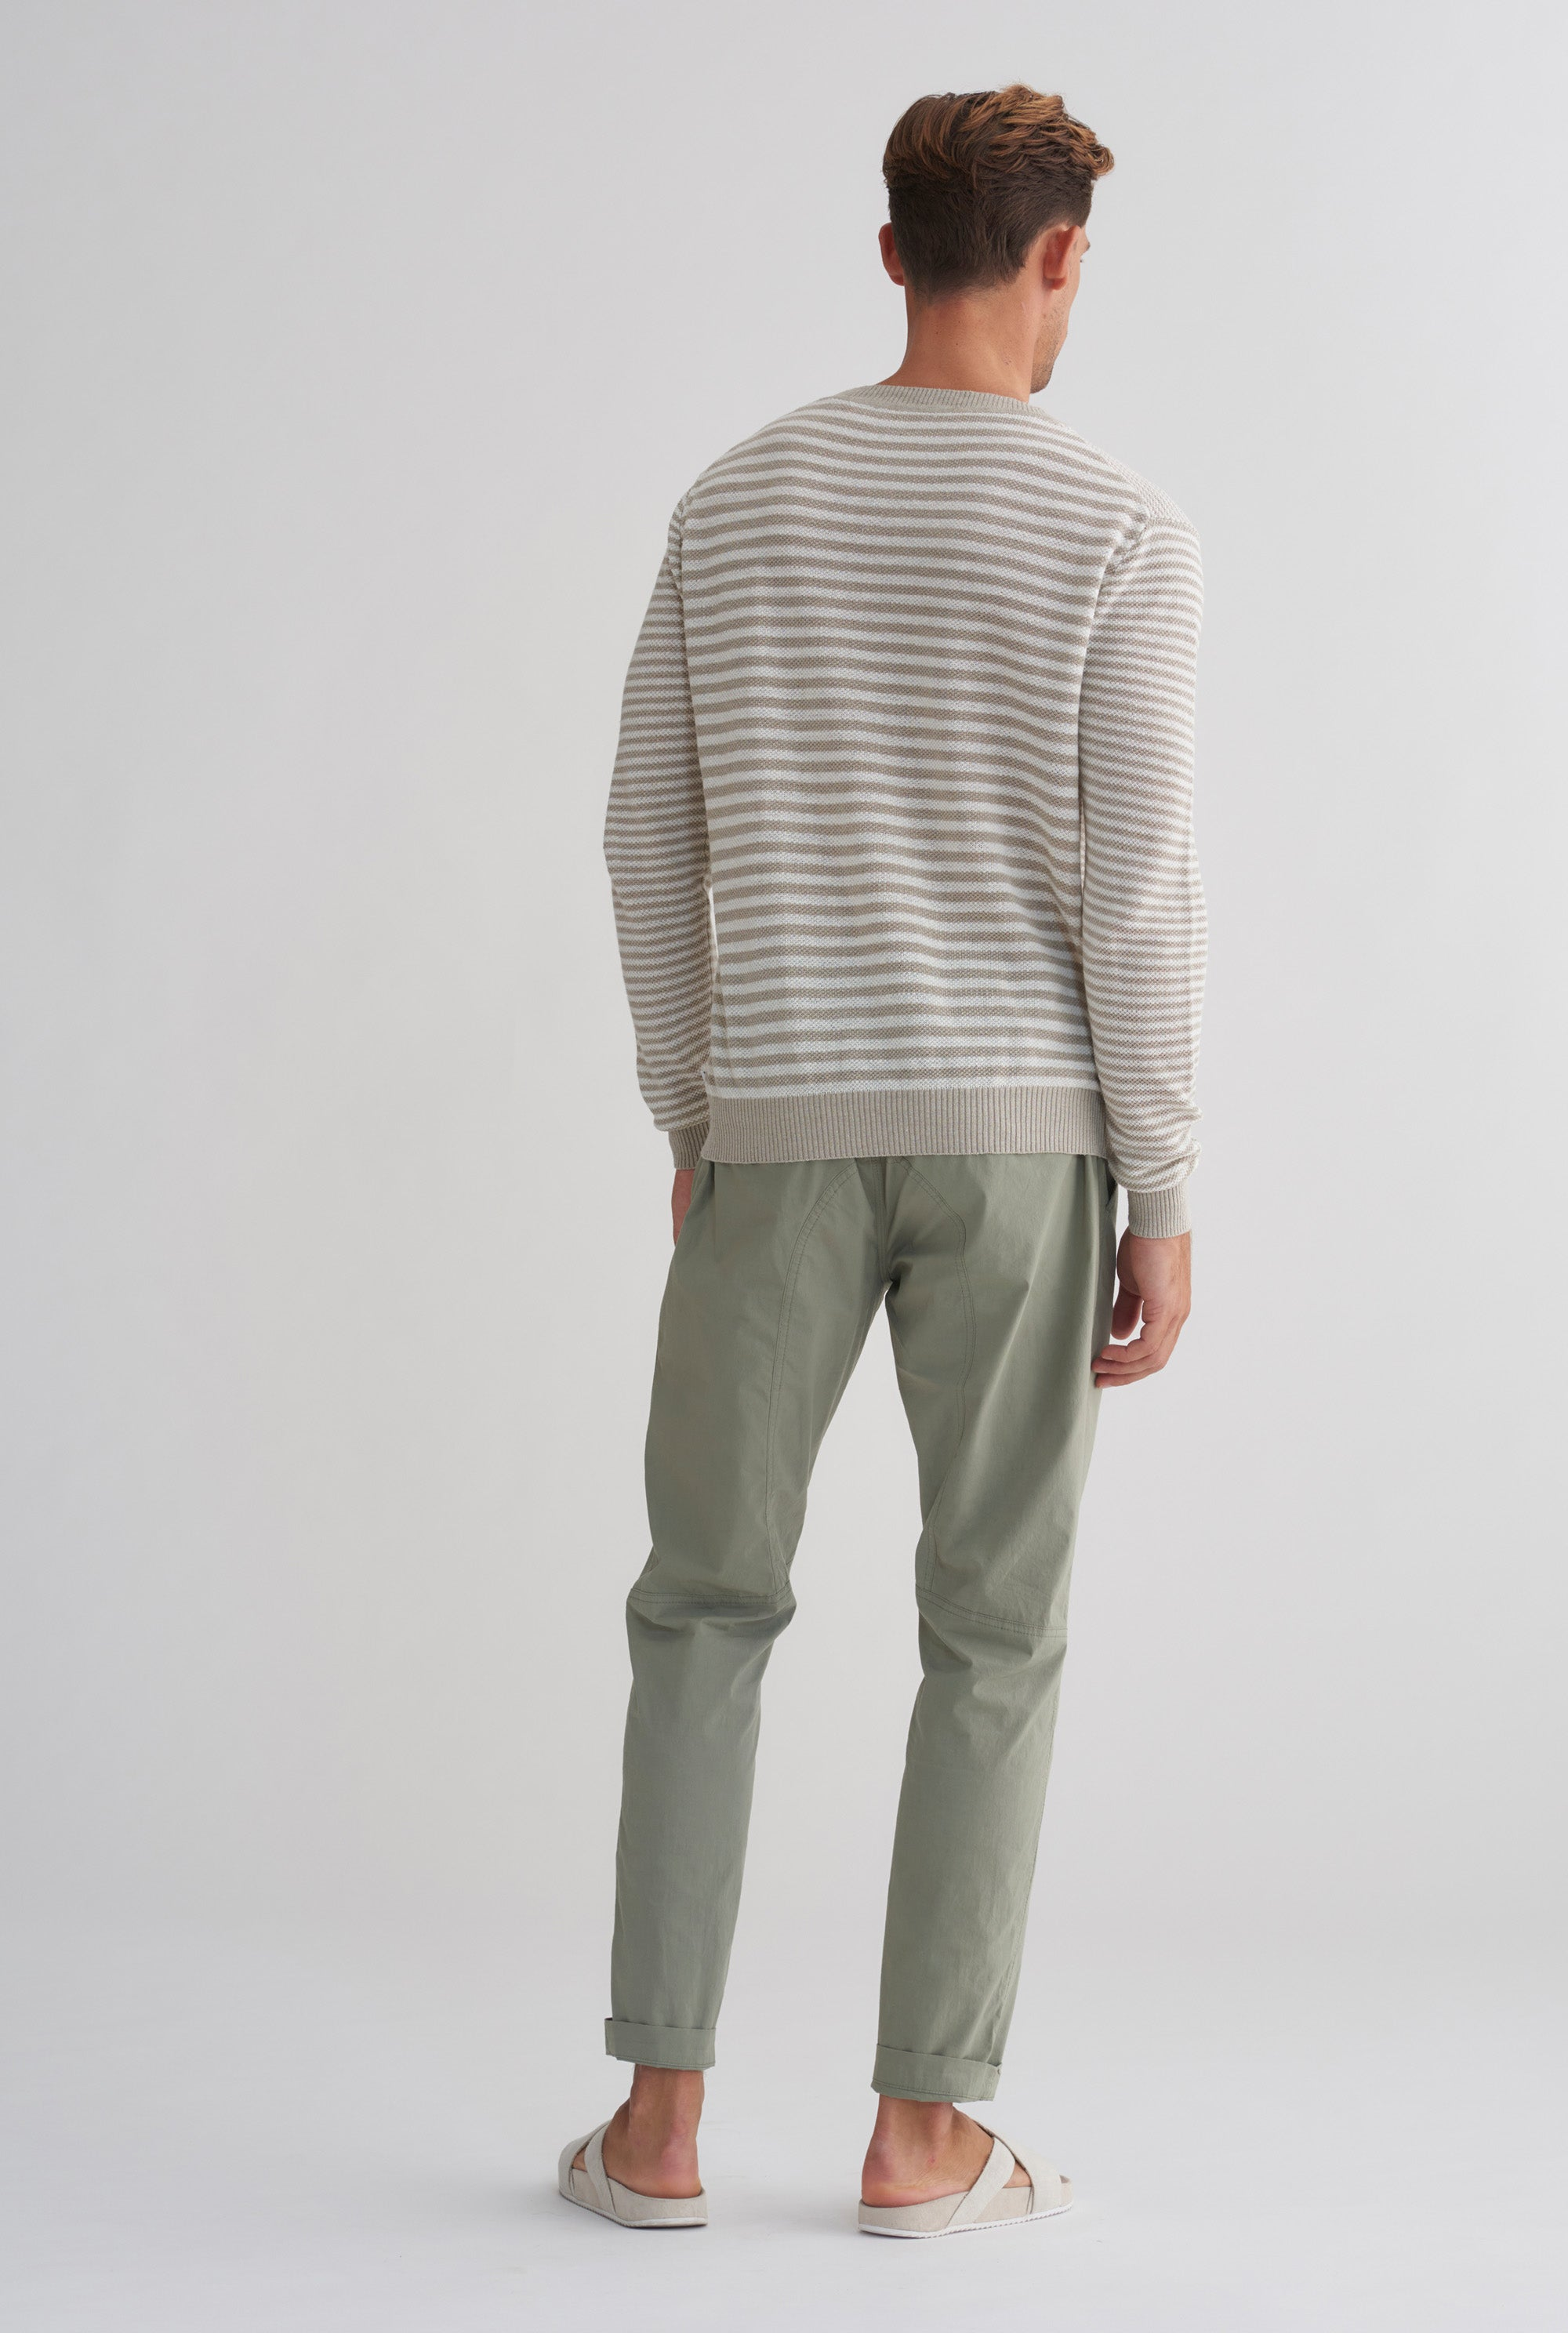 Light Weight Linen Sweater - Taupe/Off White Stripe